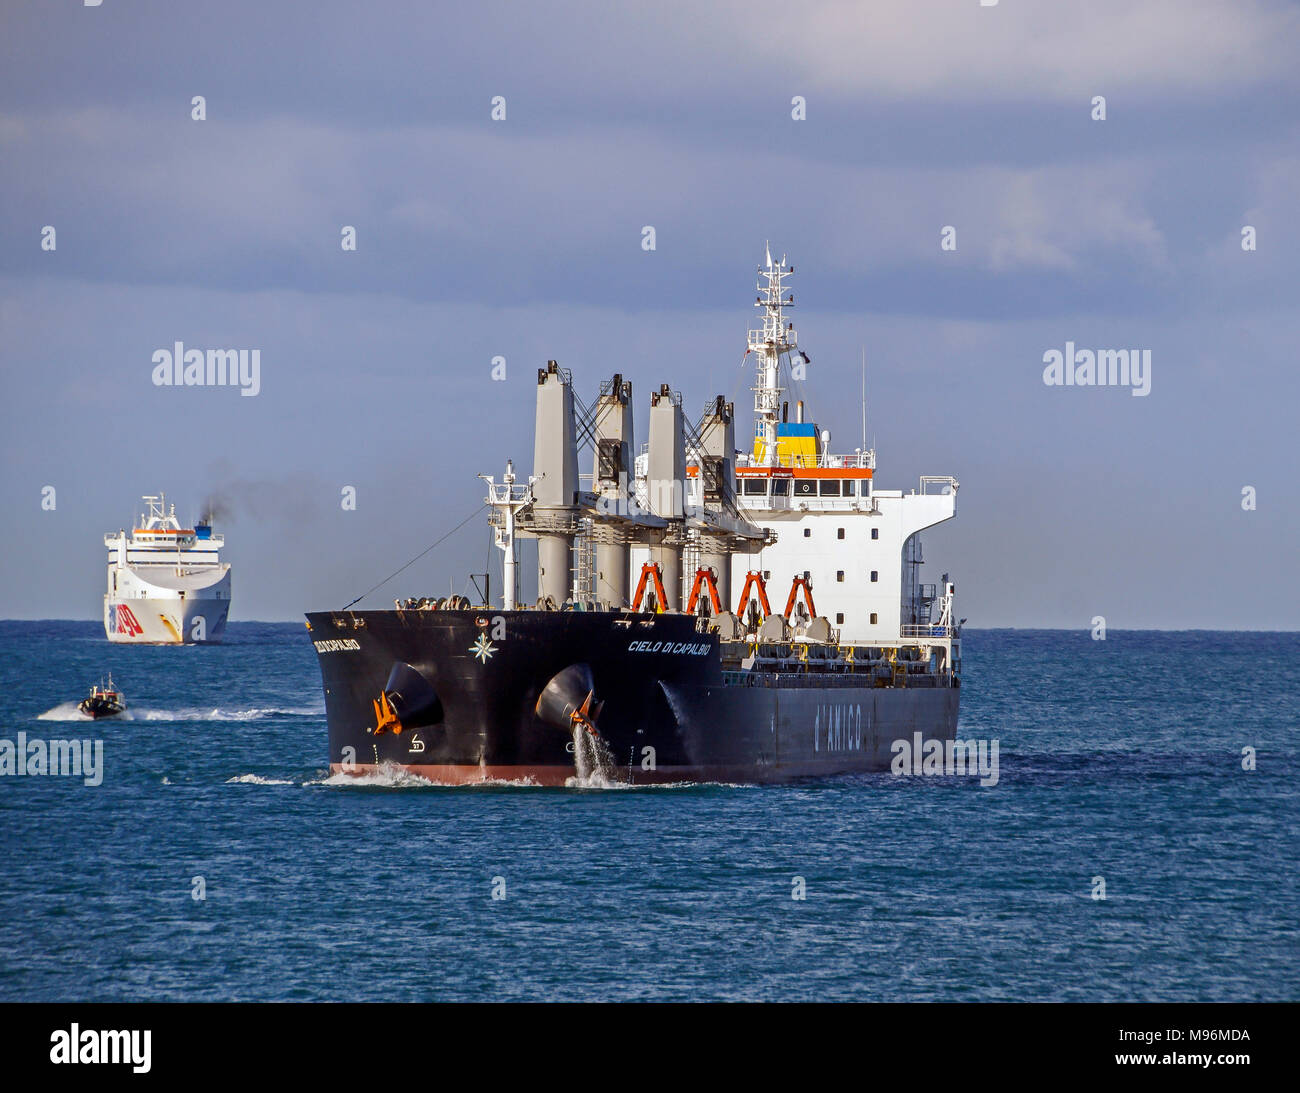 D Amico bulk carrier Cielo de Capalbio heading towards Livorno Harbour Livorno Italy Europe with Massimo Mura behind - Stock Image